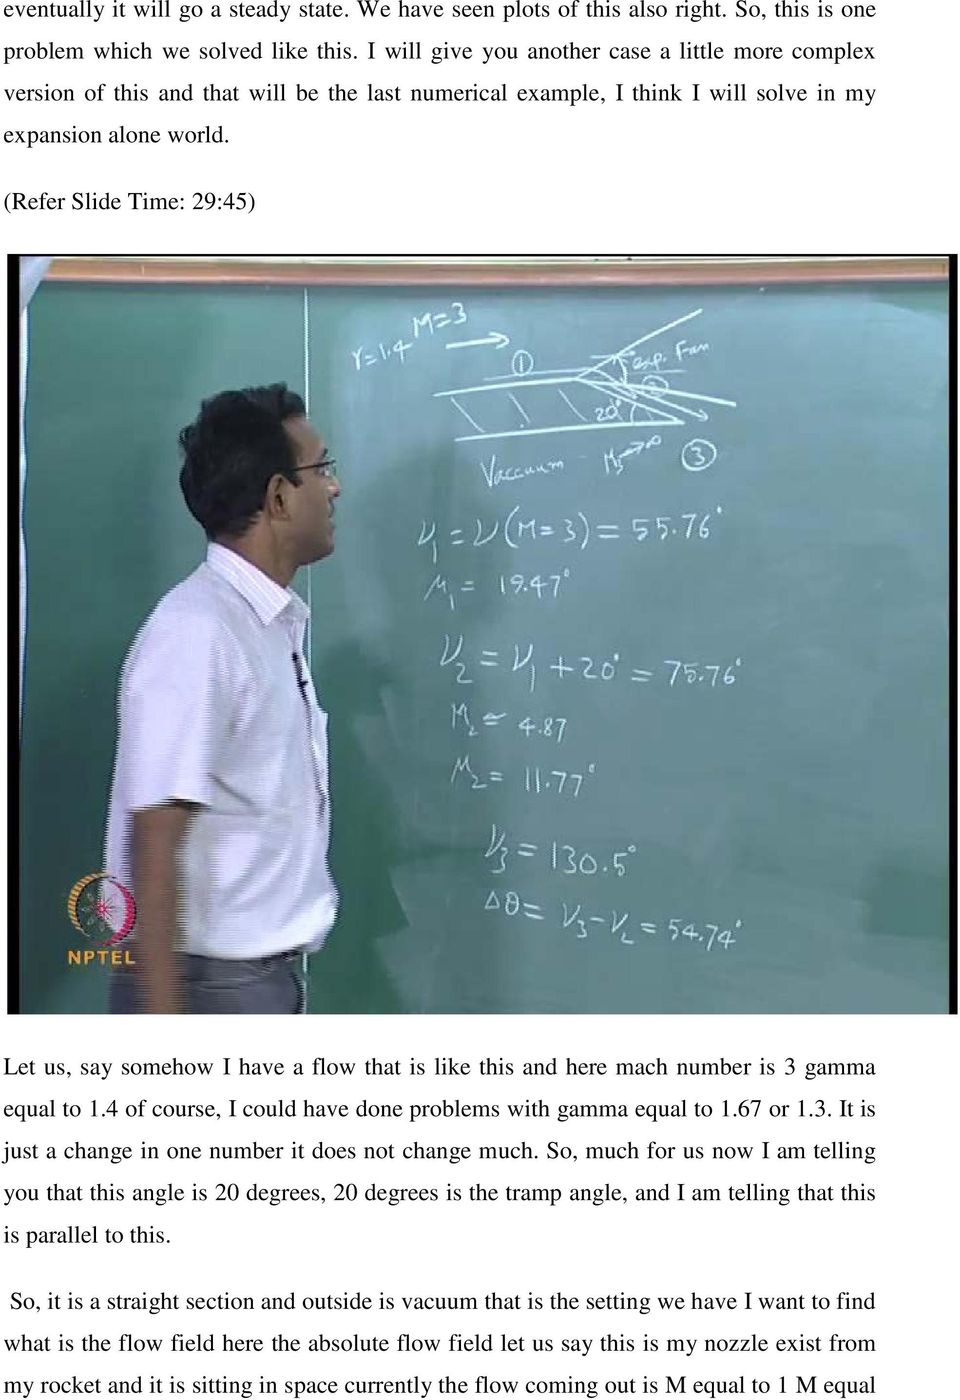 (Refer Slide Time: 29:45) Let us, say somehow I have a flow that is like this and here mach number is 3 gamma equal to 1.4 of course, I could have done problems with gamma equal to 1.67 or 1.3. It is just a change in one number it does not change much.